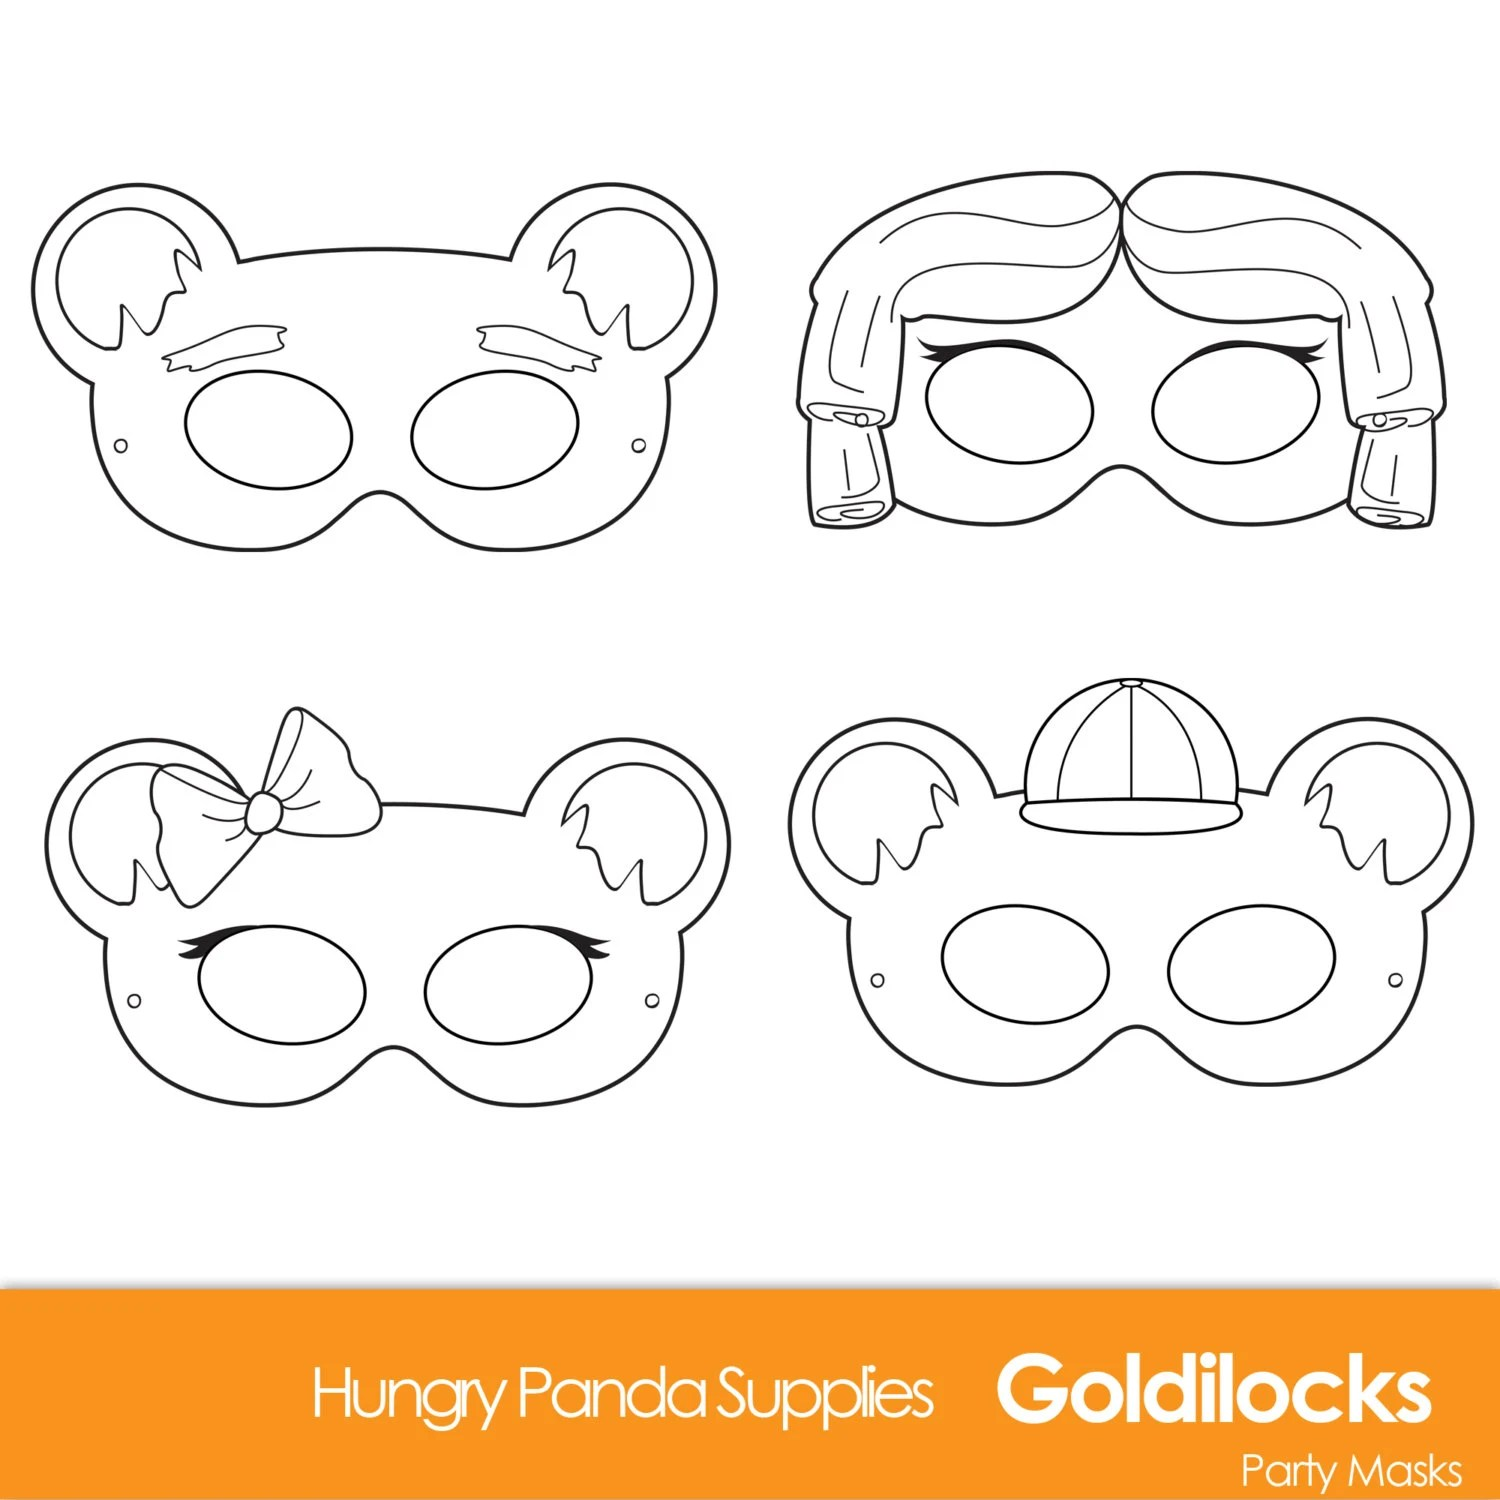 Goldilocks And The Three Bears Printable Masks Goldilocks